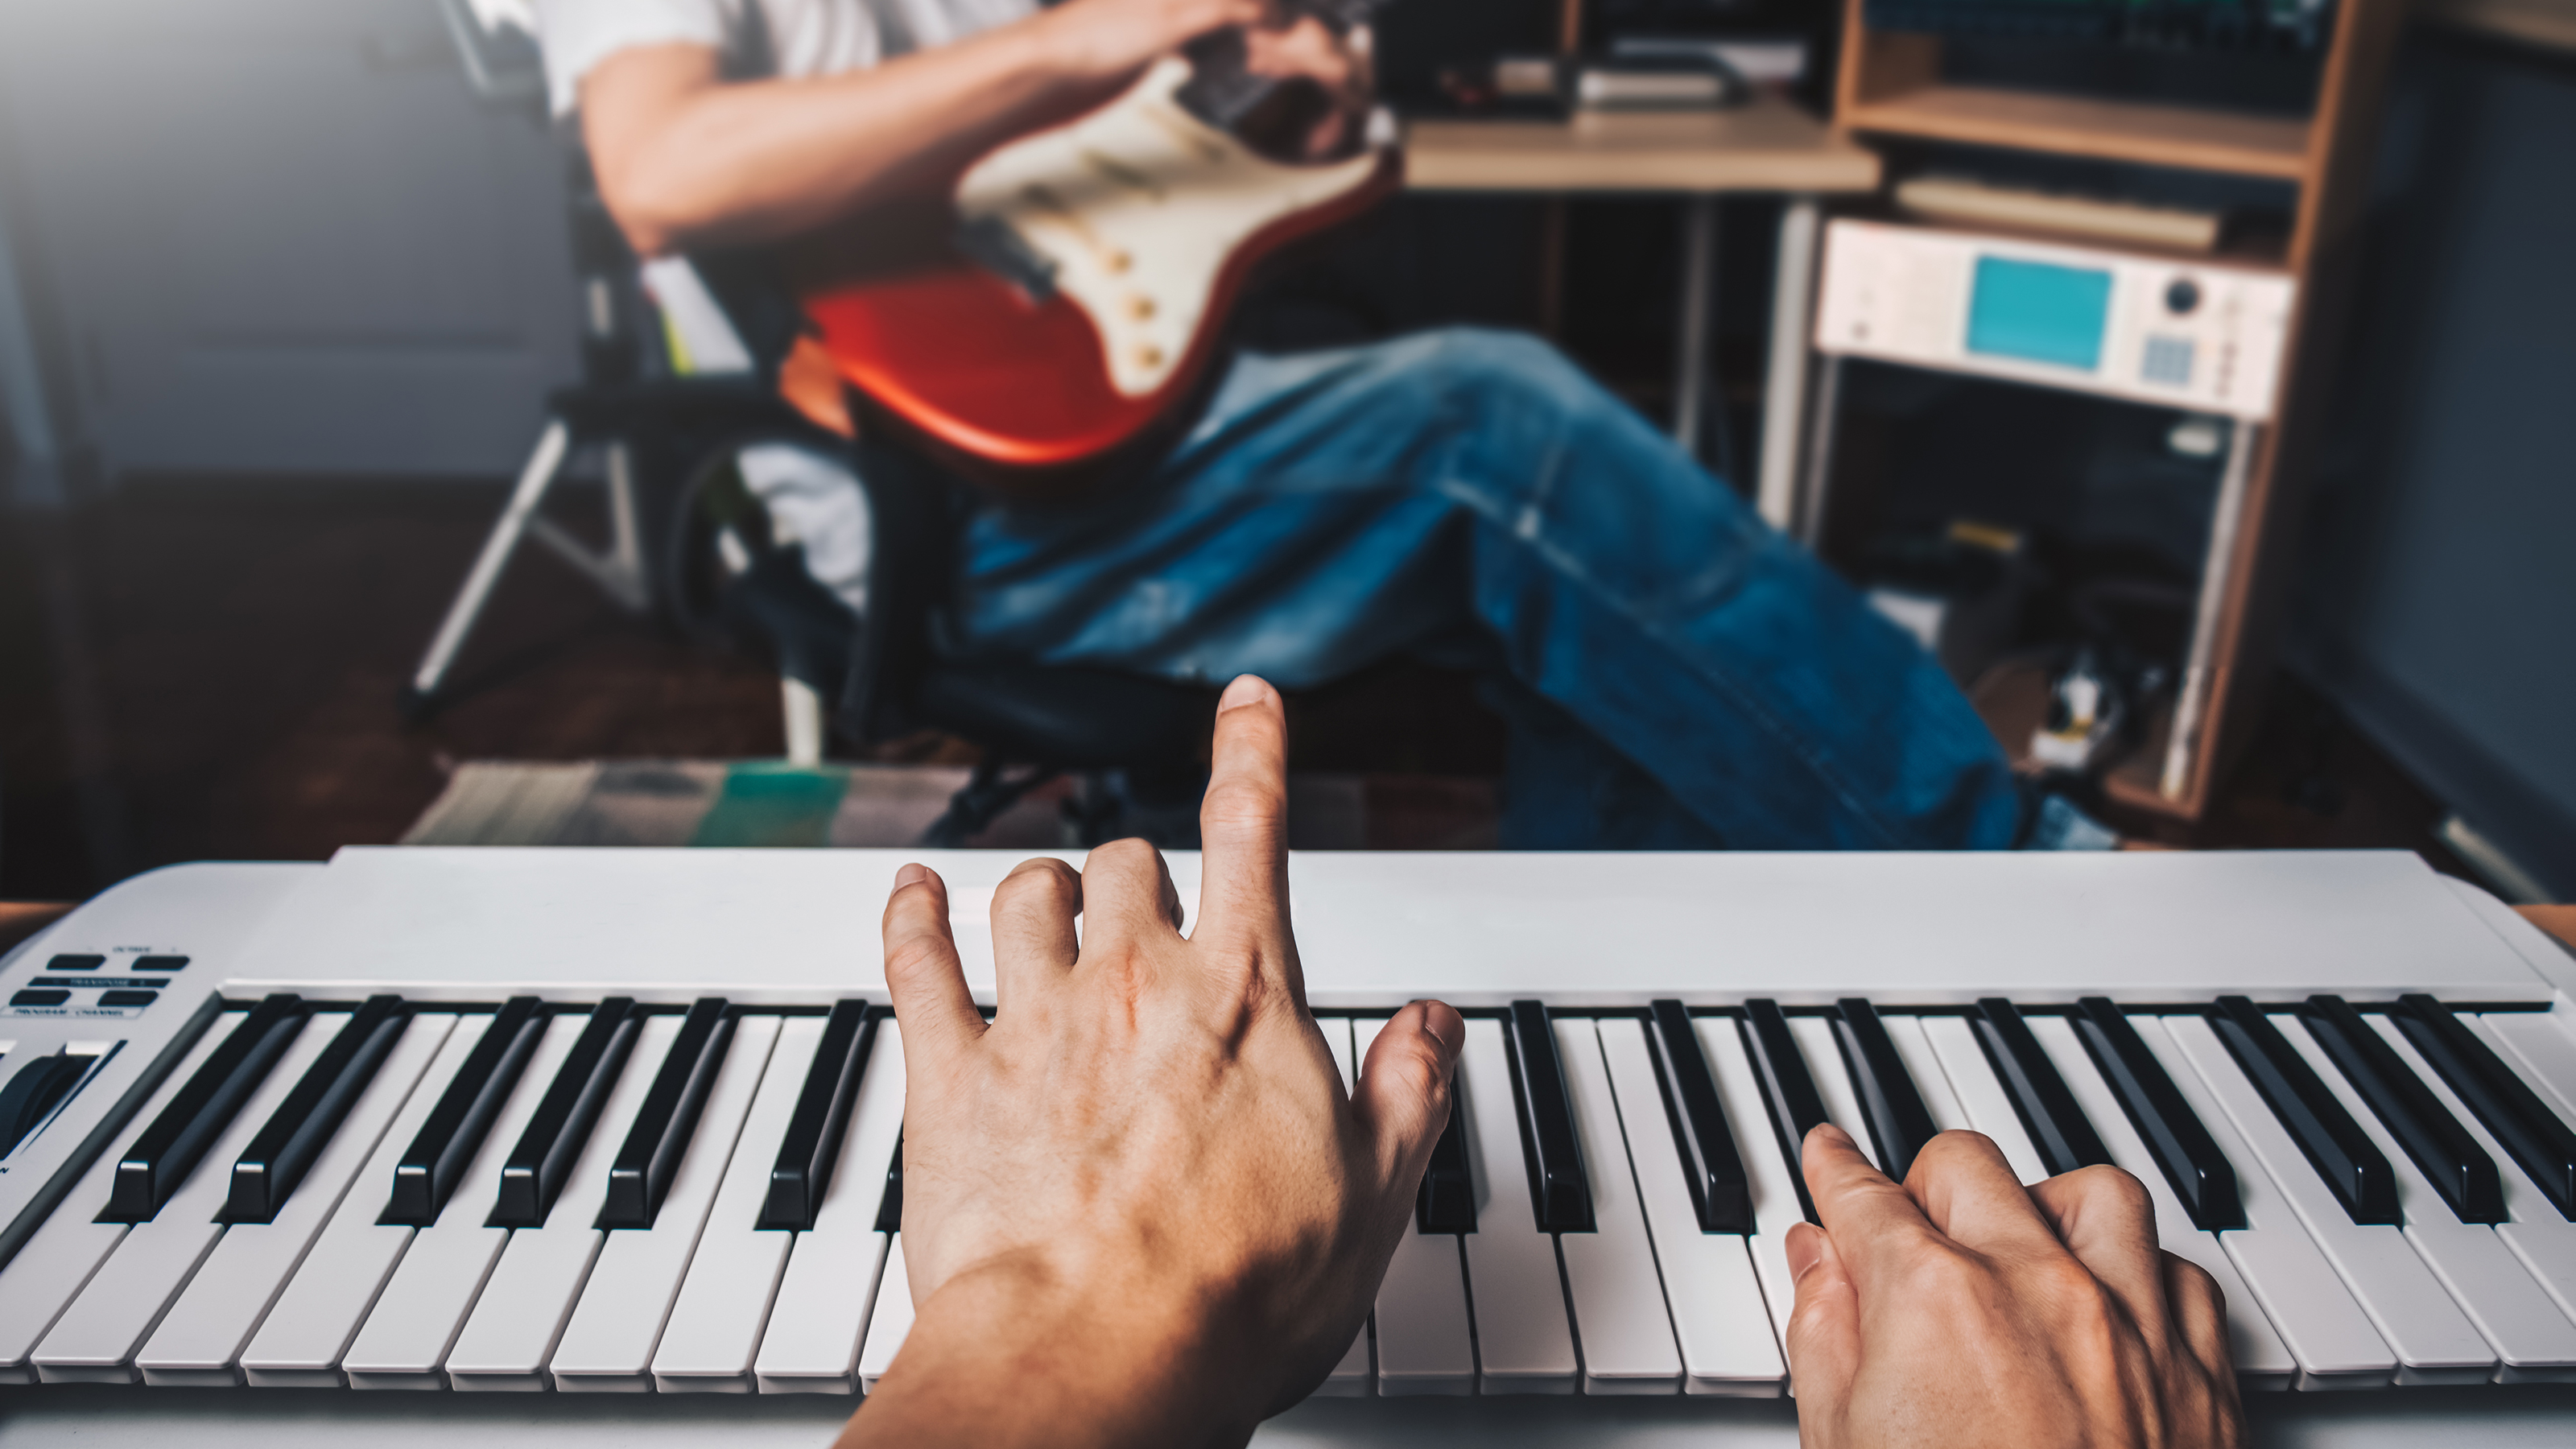 Songwriting melody